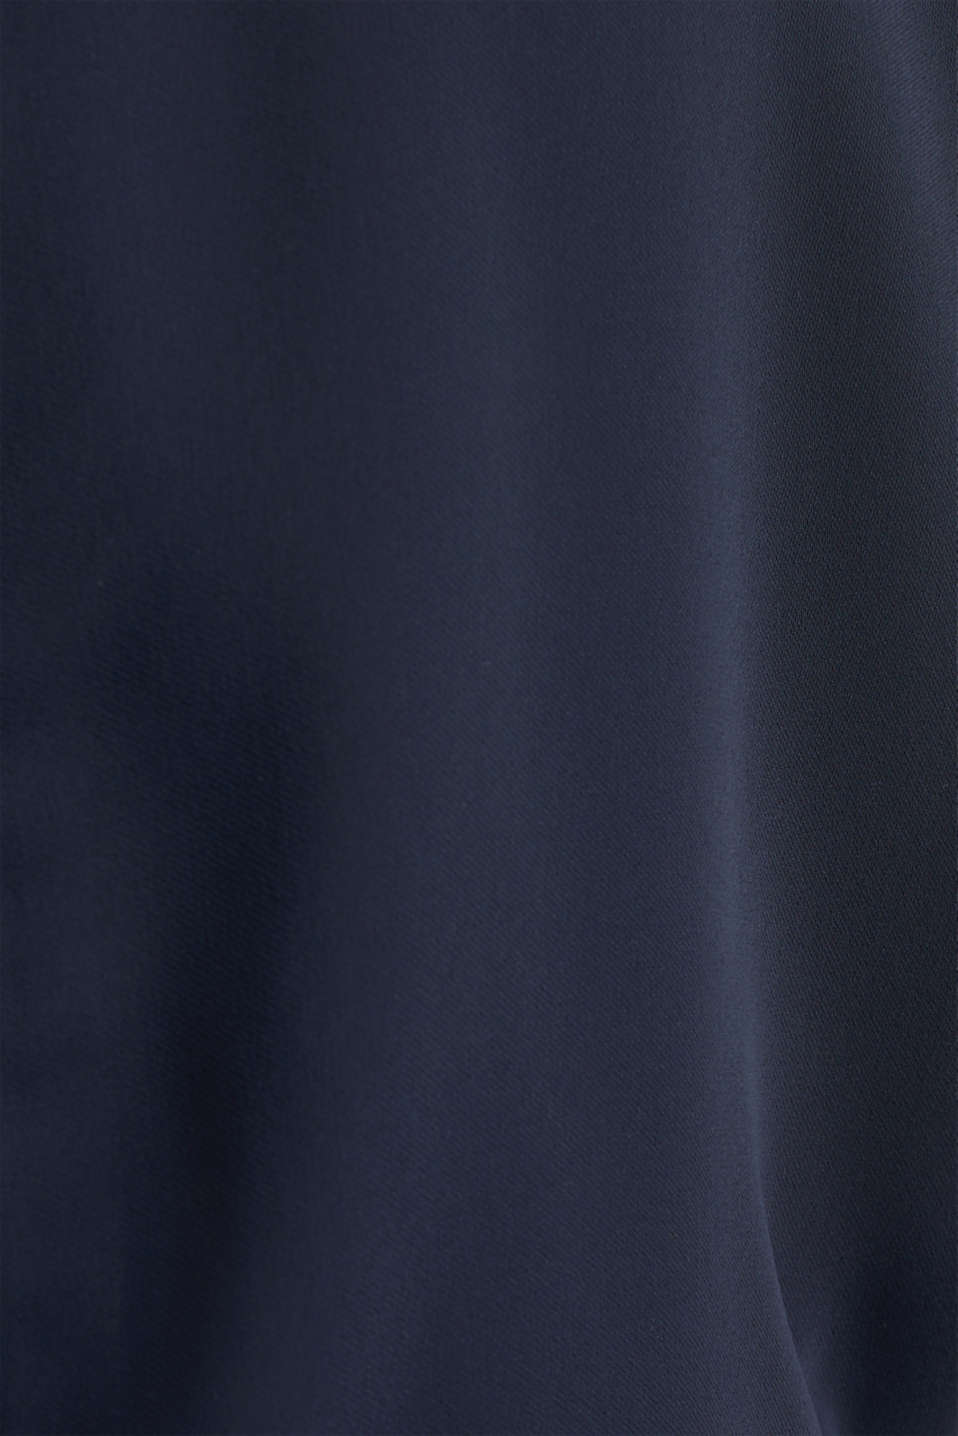 Cloth polo neck dress, NAVY, detail image number 3